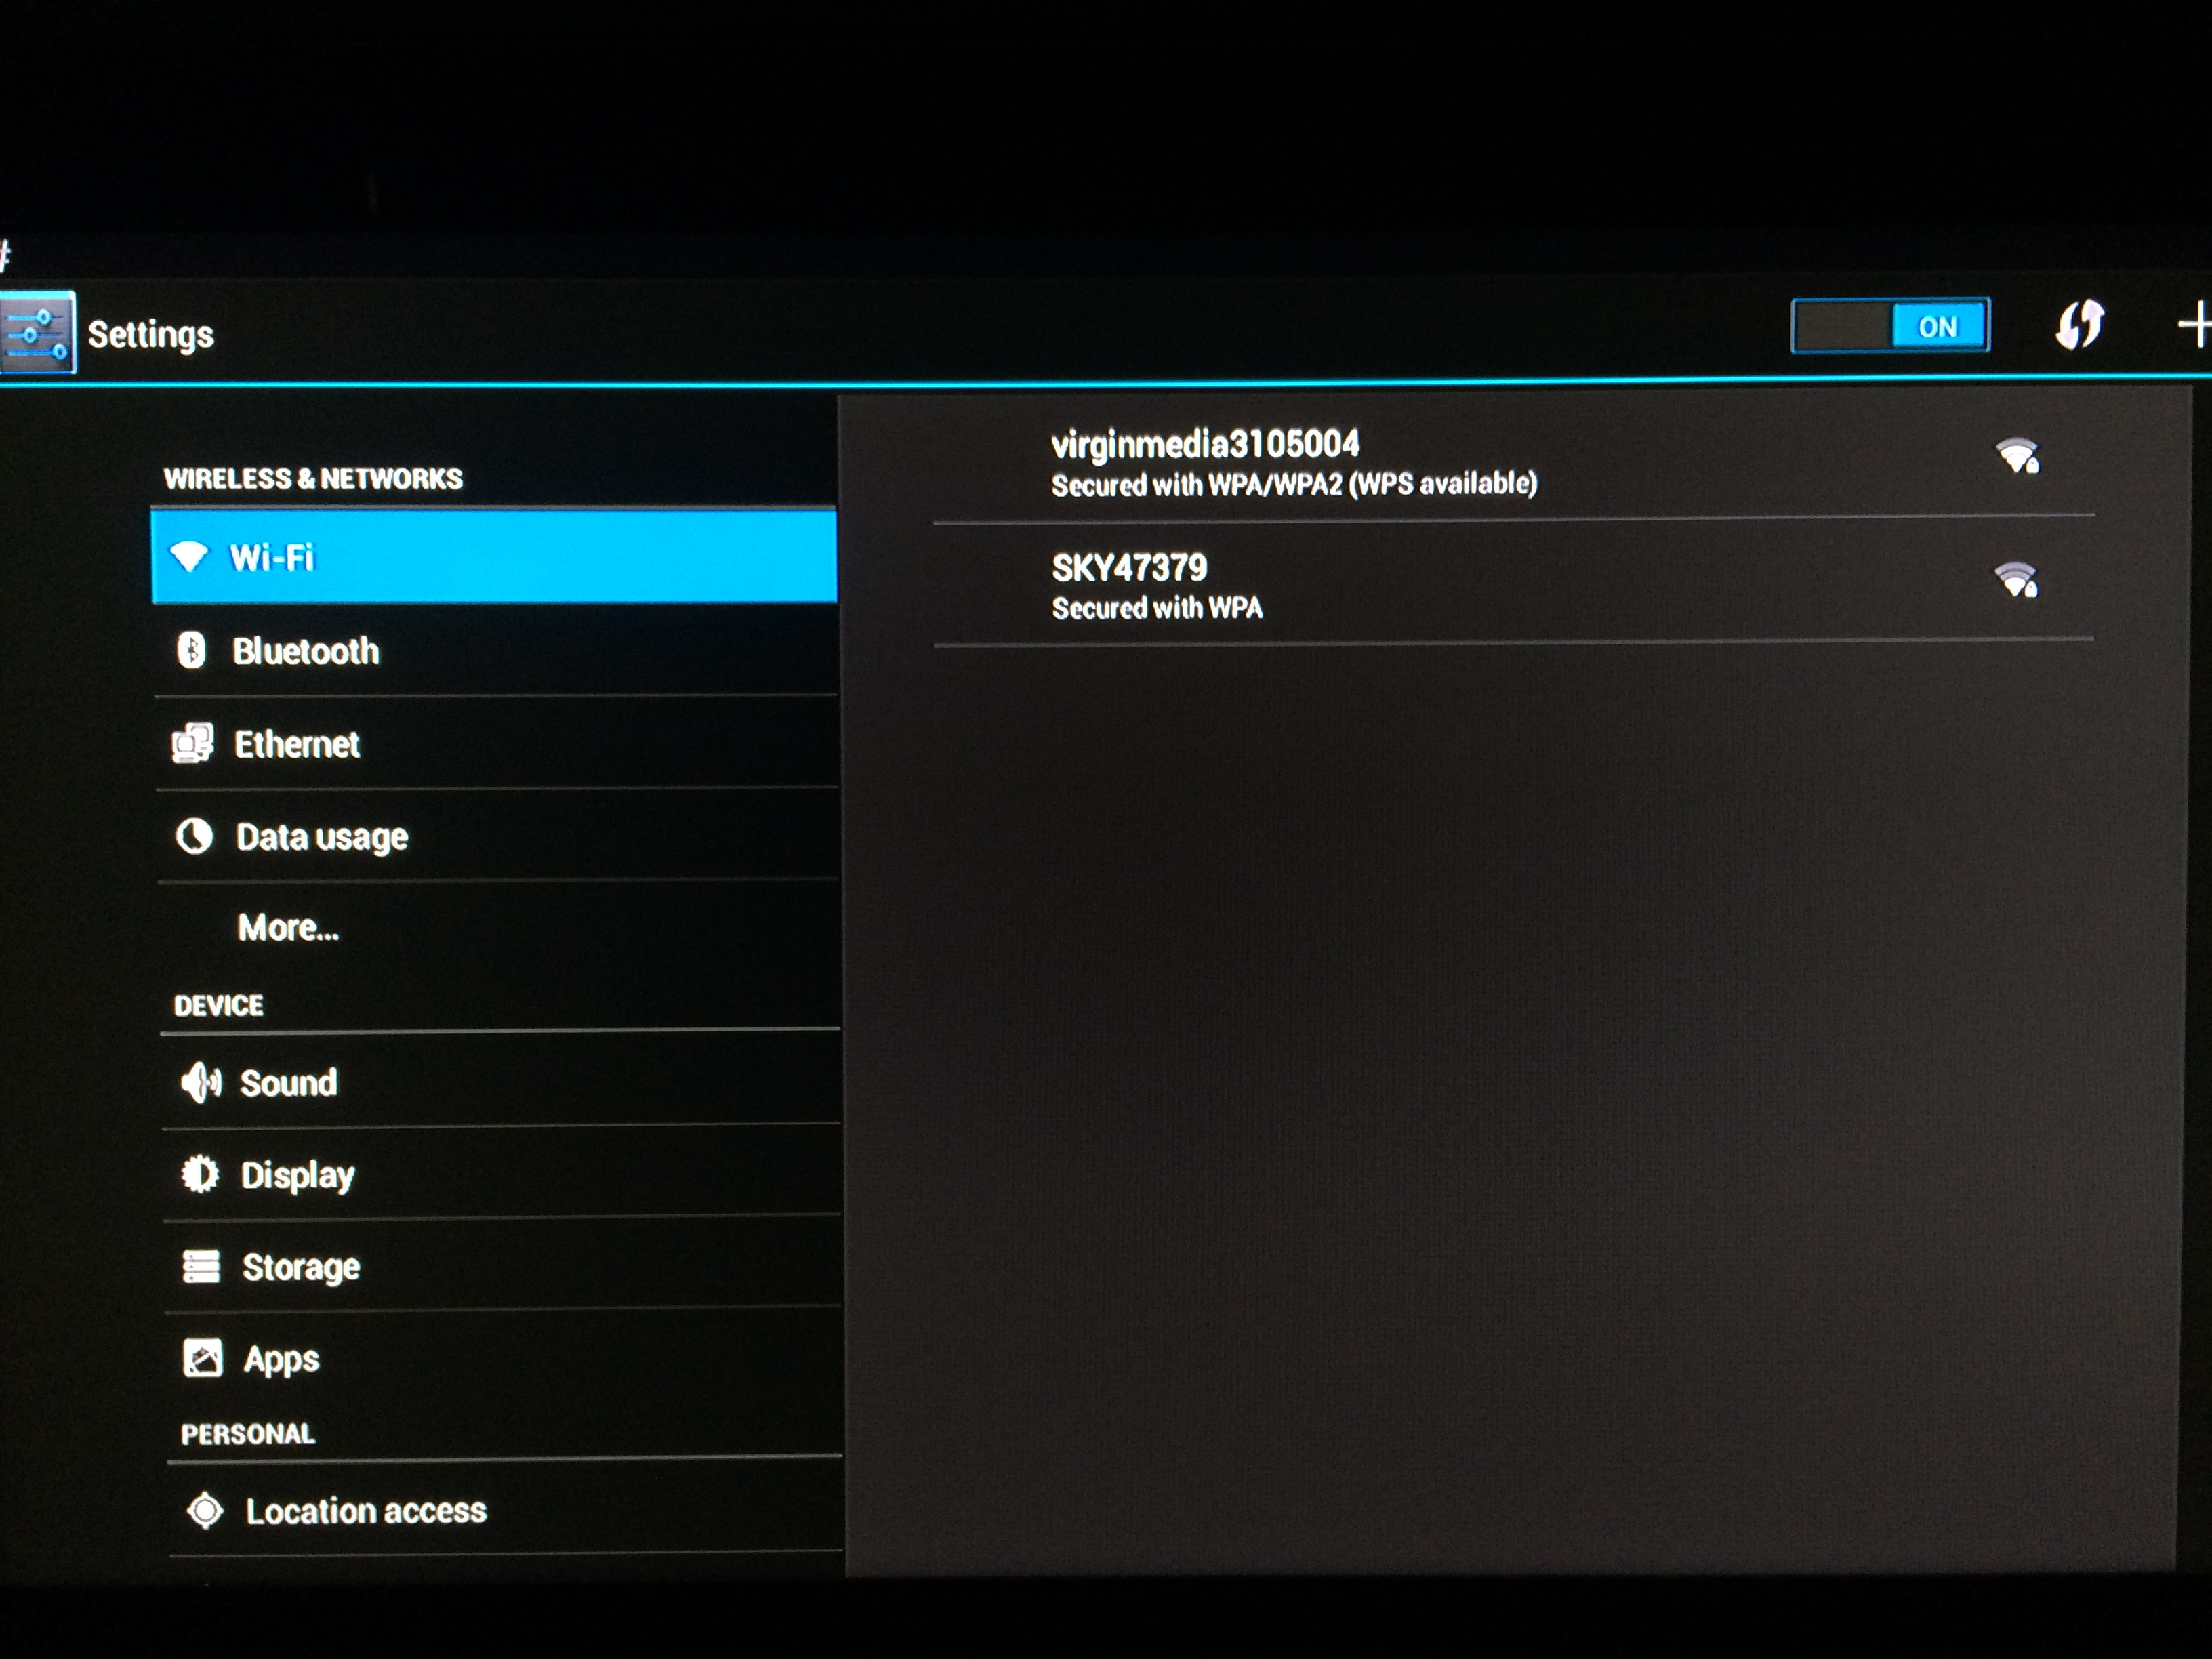 Configure Network Settings Wifi Ethernet On The Droidplayer Android Box Ip Wiring Diagram Get Free Image About